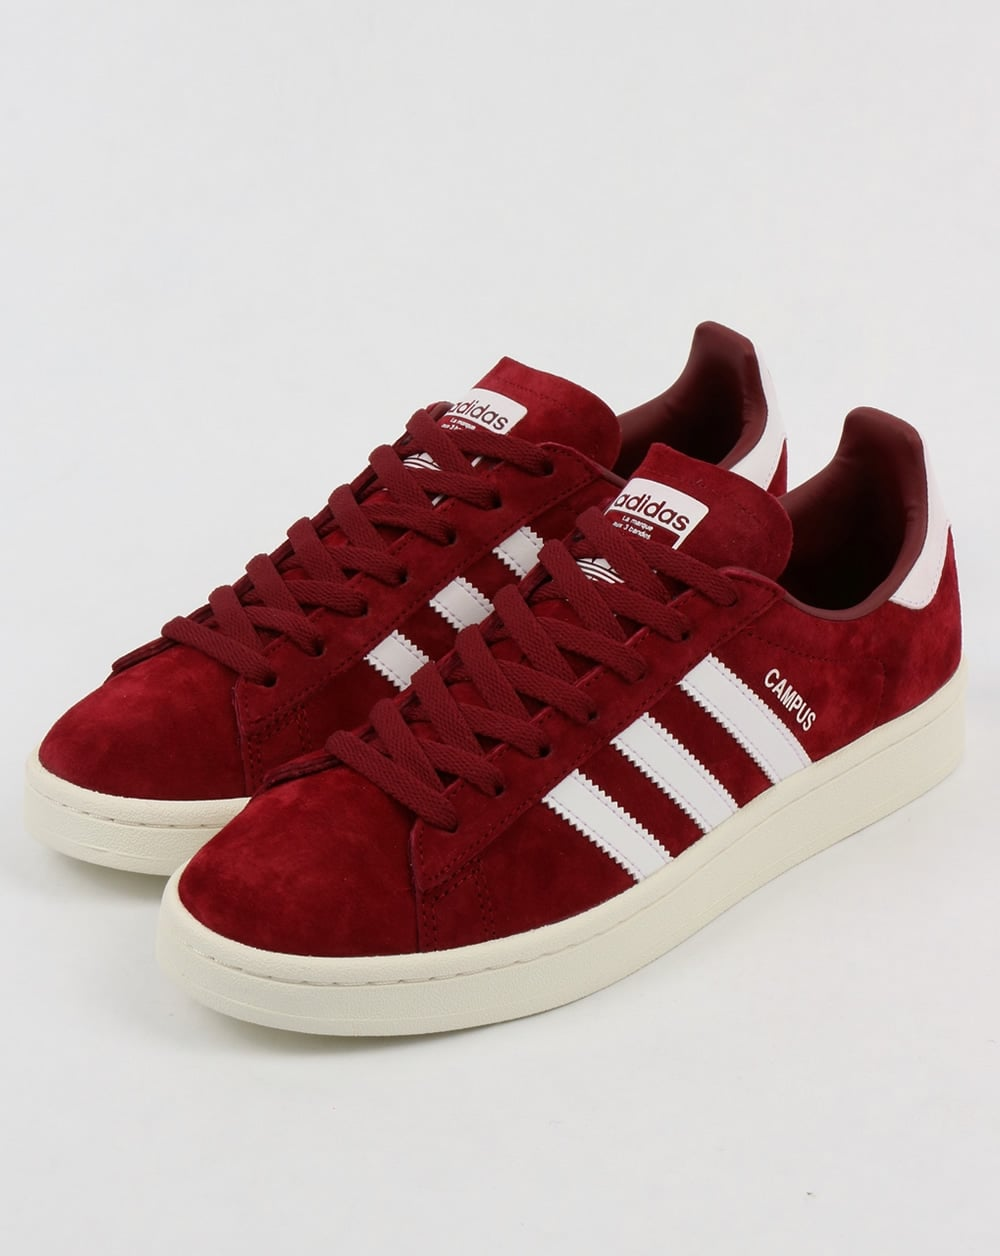 Addidas Campus Shoes Mens